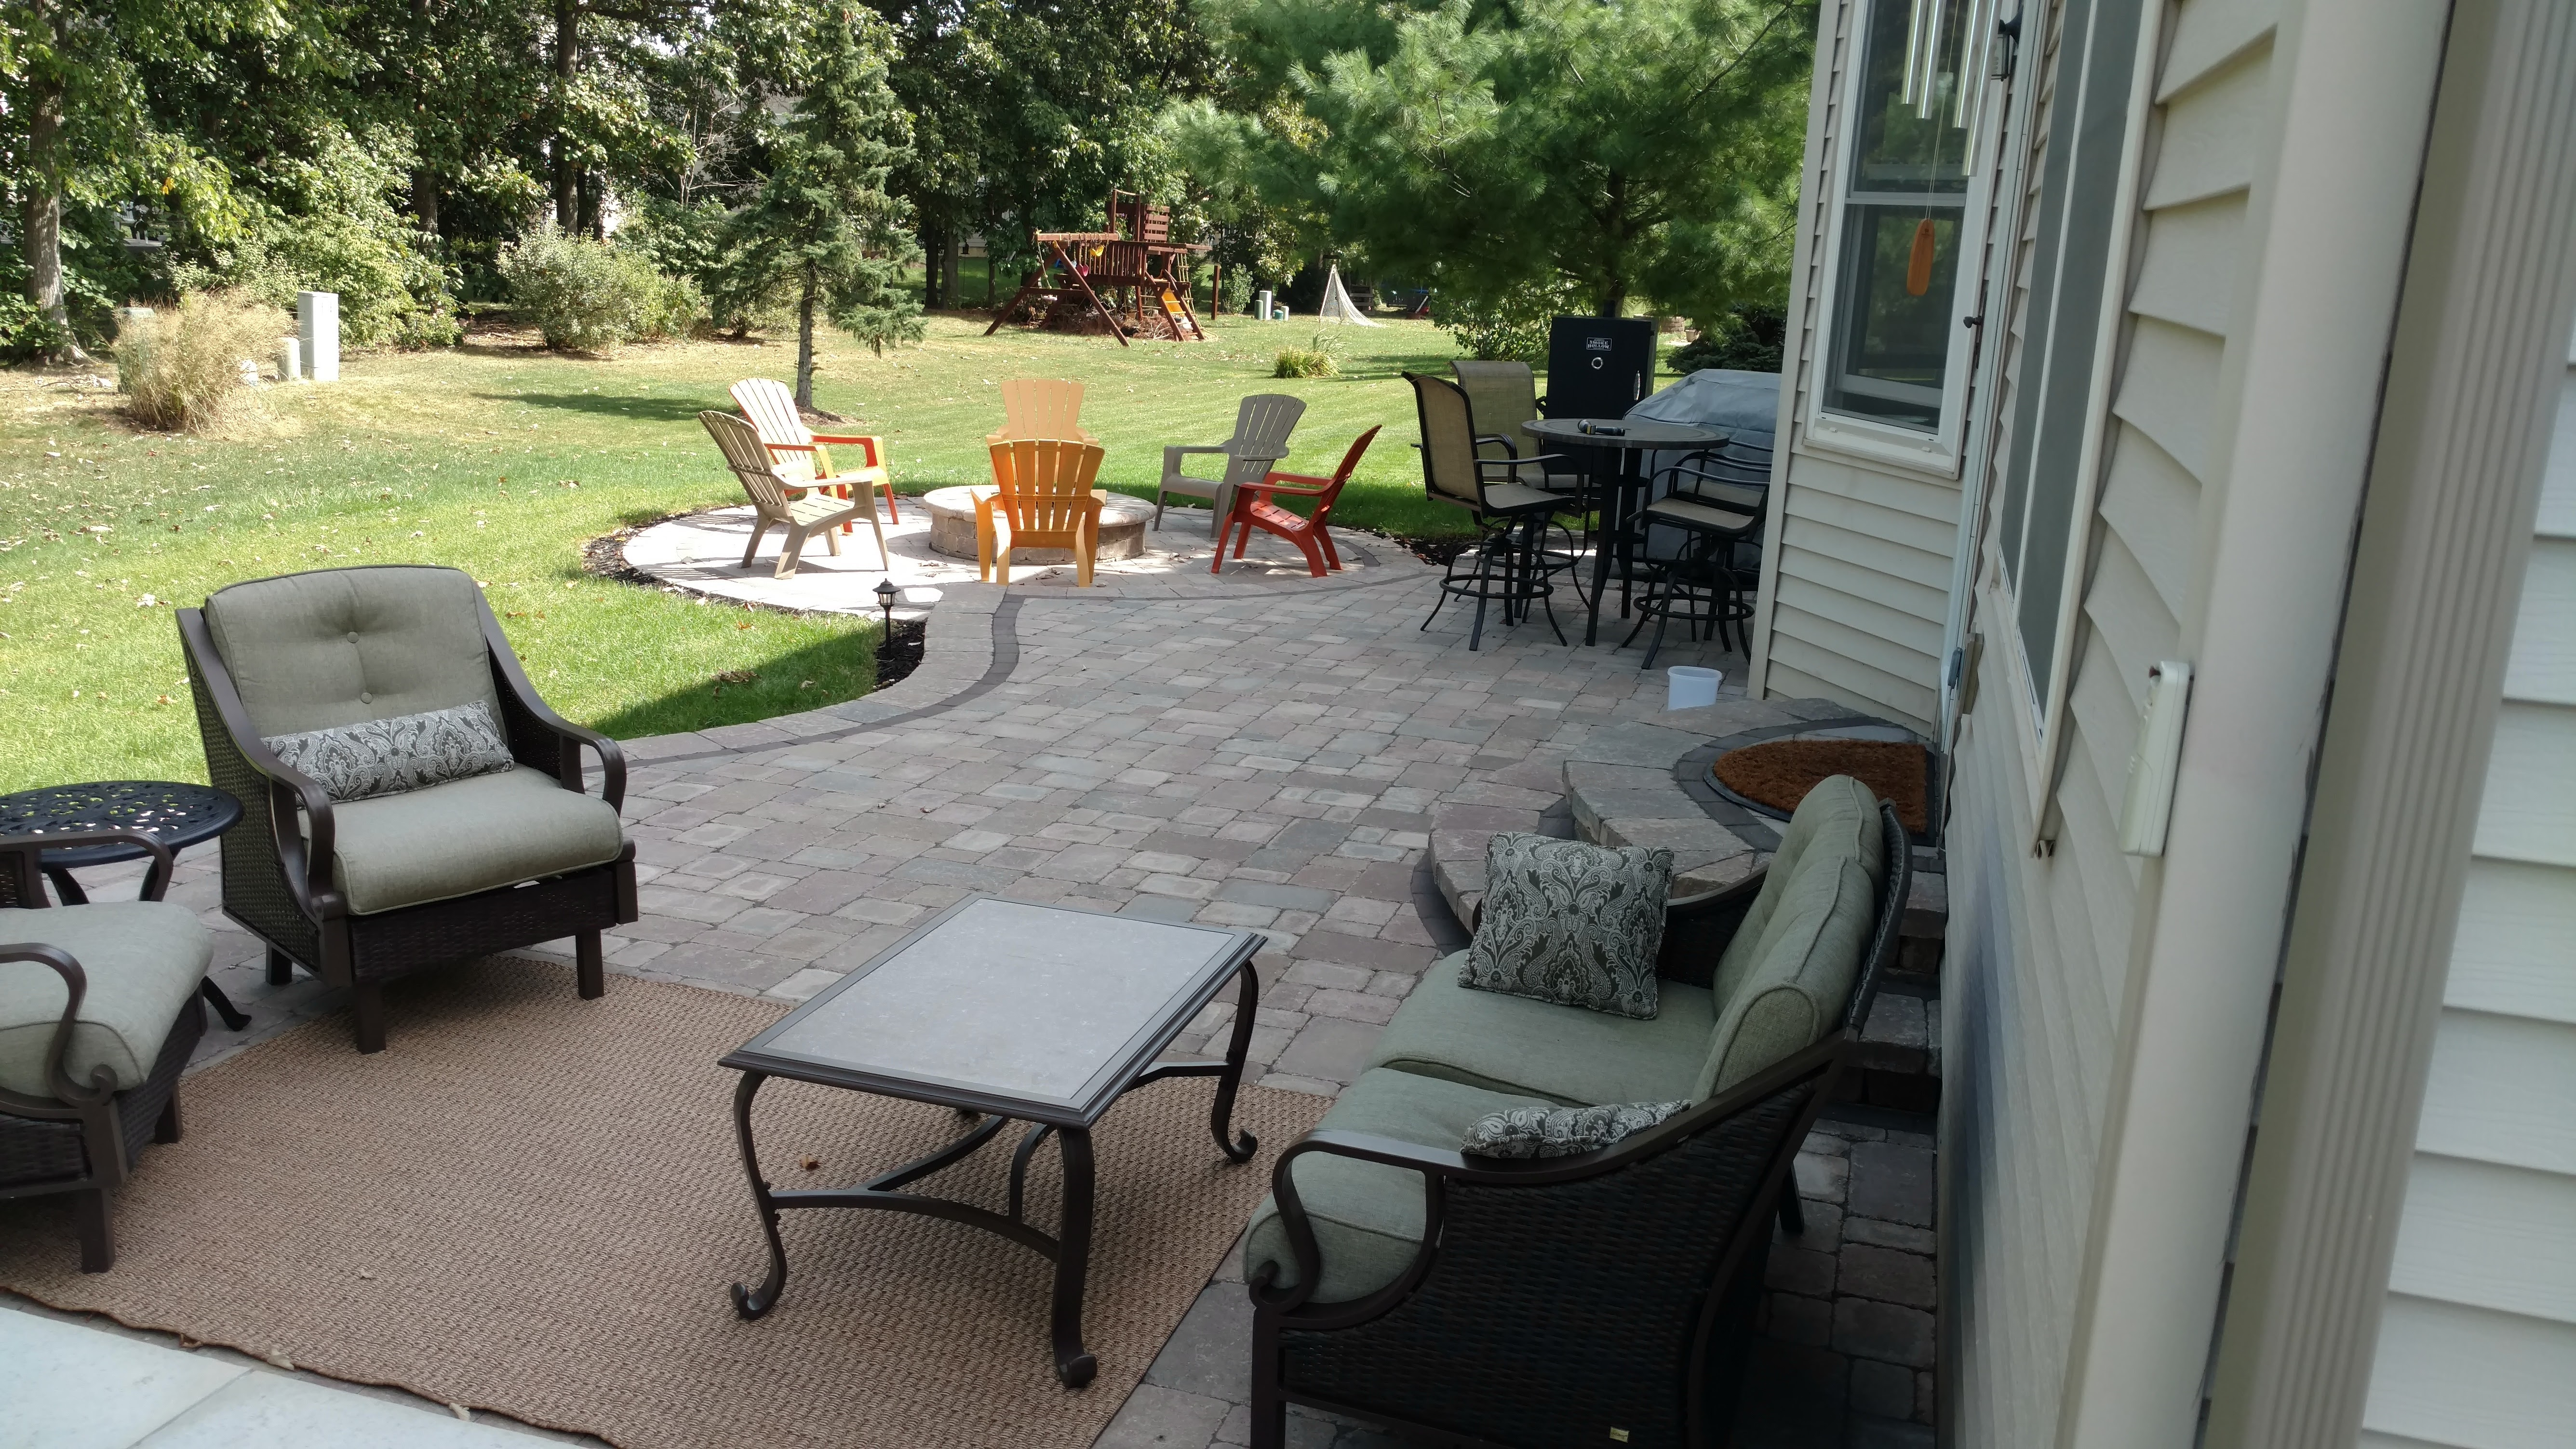 The Project Features A Multi Tiered Paver Patio With A Privacy Wall And  Custom Fire Pit. True To The Title Of This Focus Story, This Backyard Oasis  Has All ...